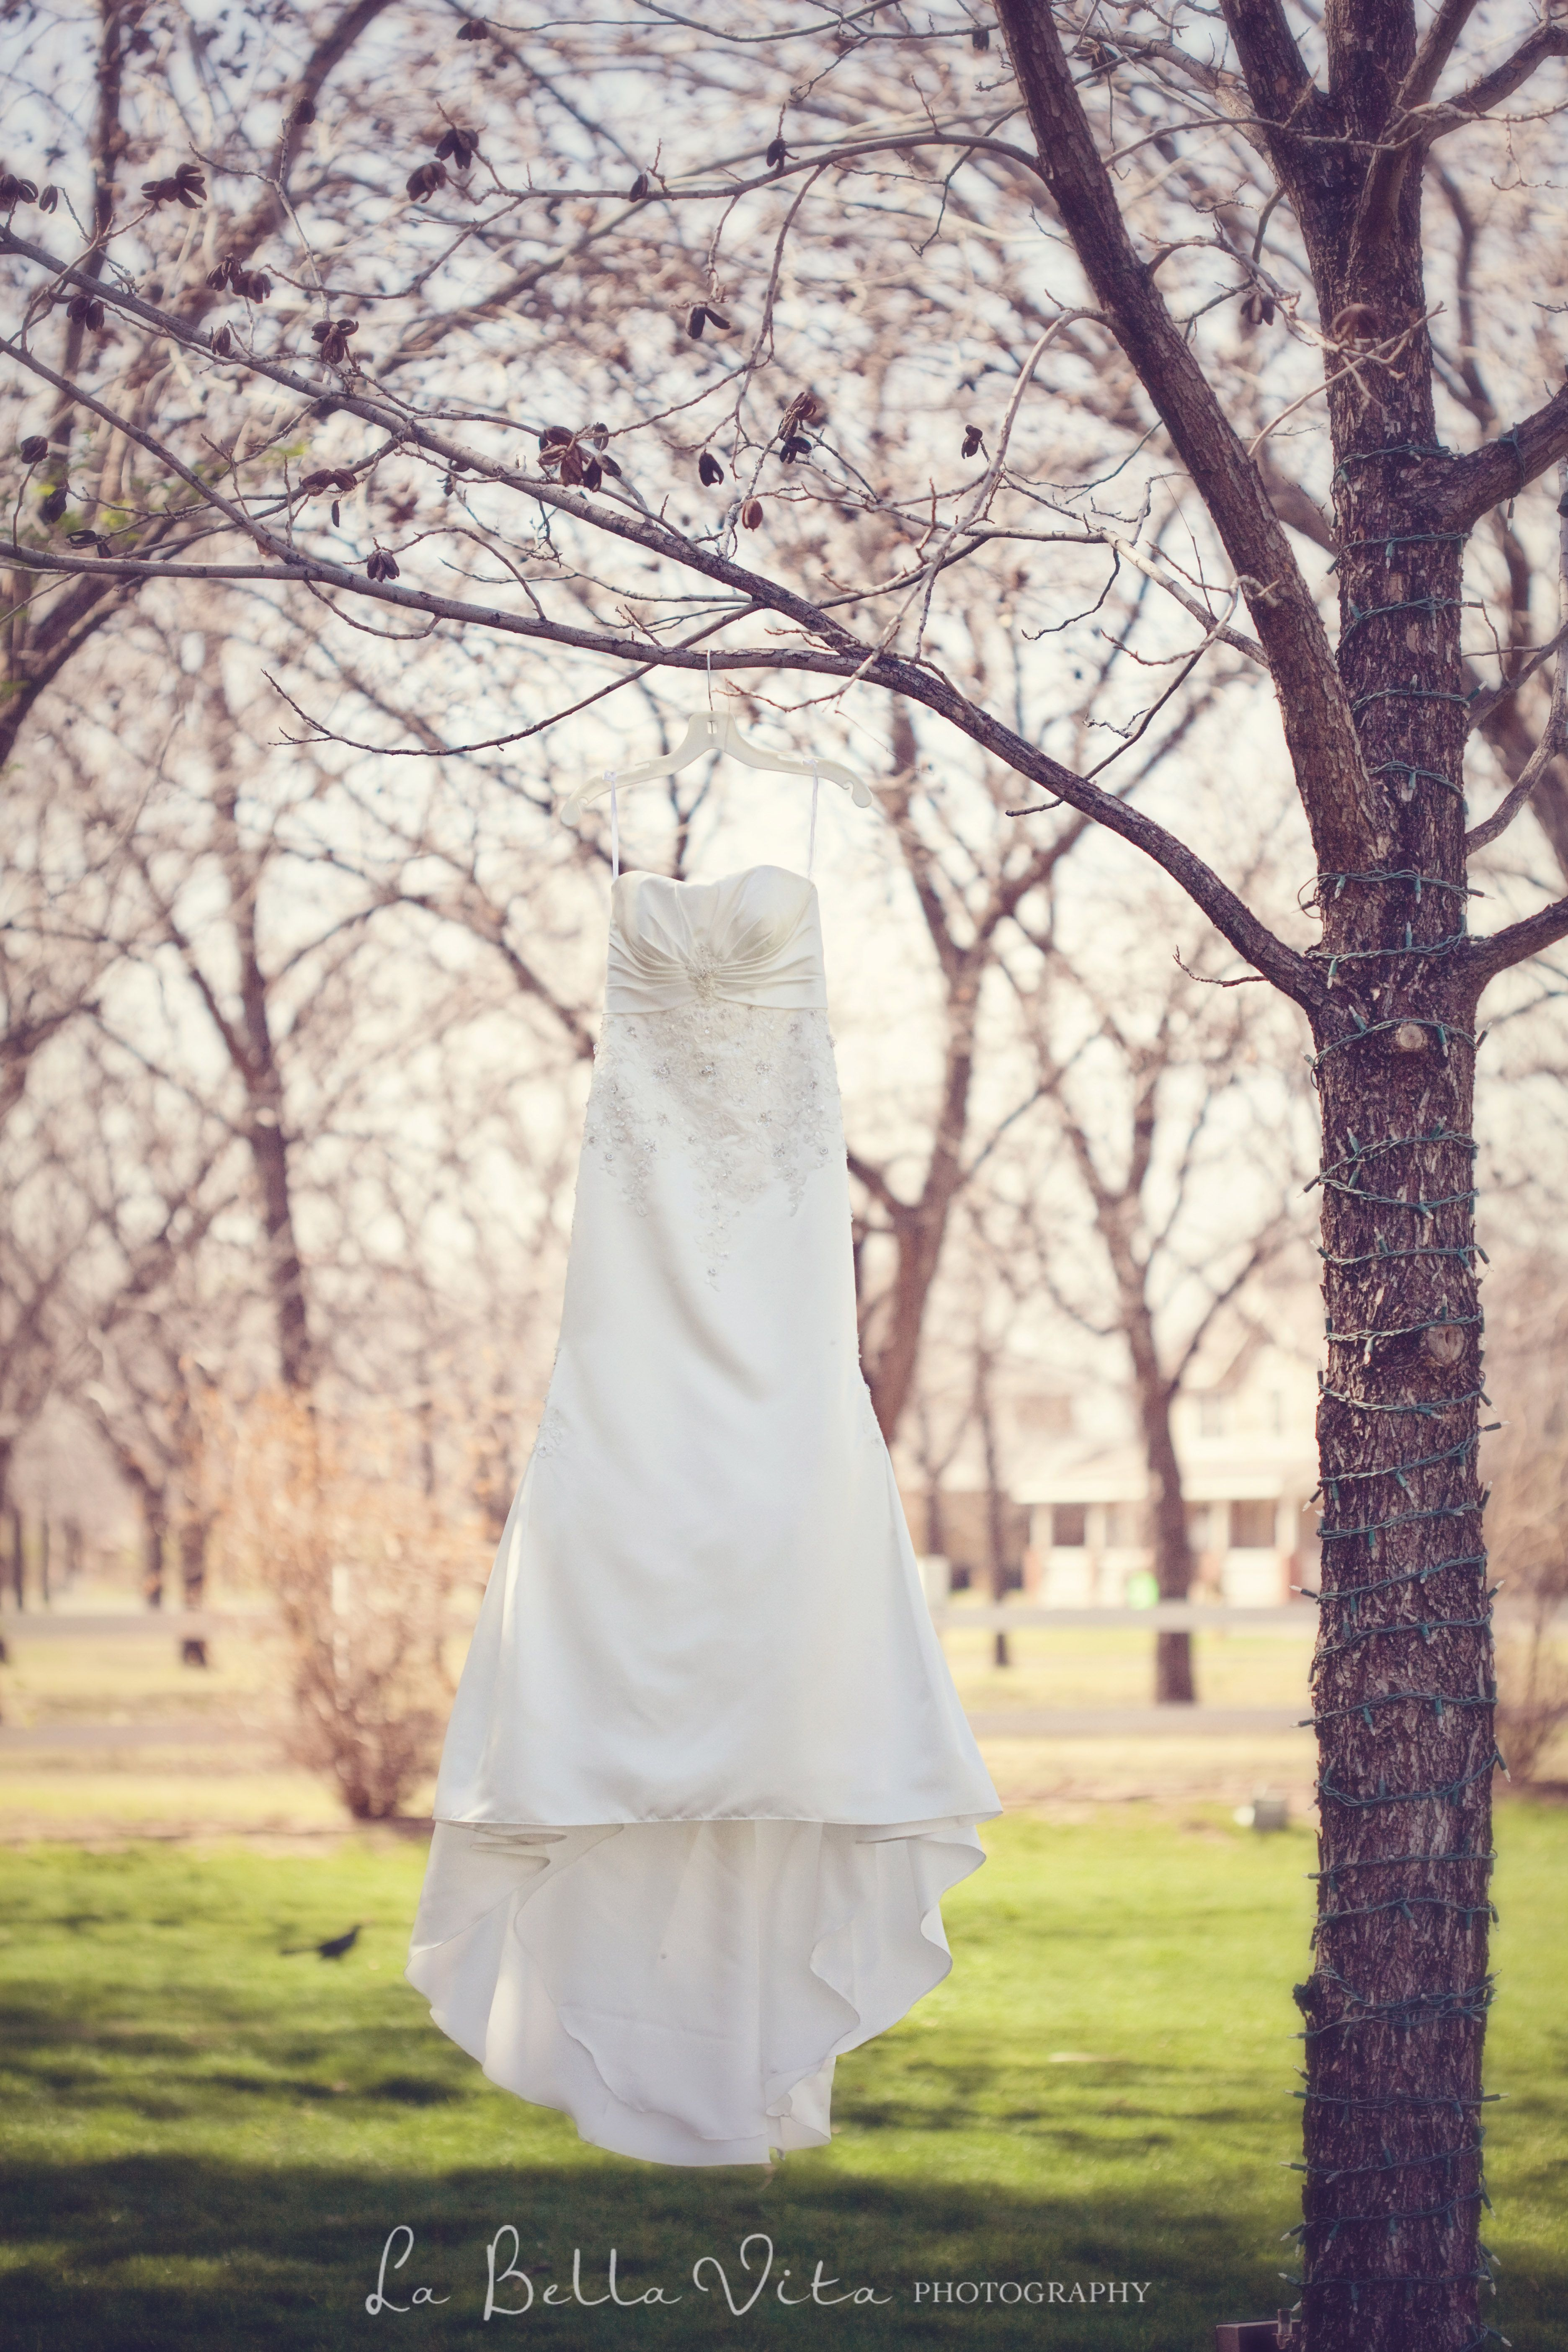 8fe1e4df4abb5 Venue at the Grove- Gorgeous dress and outdoor winter wedding scenery